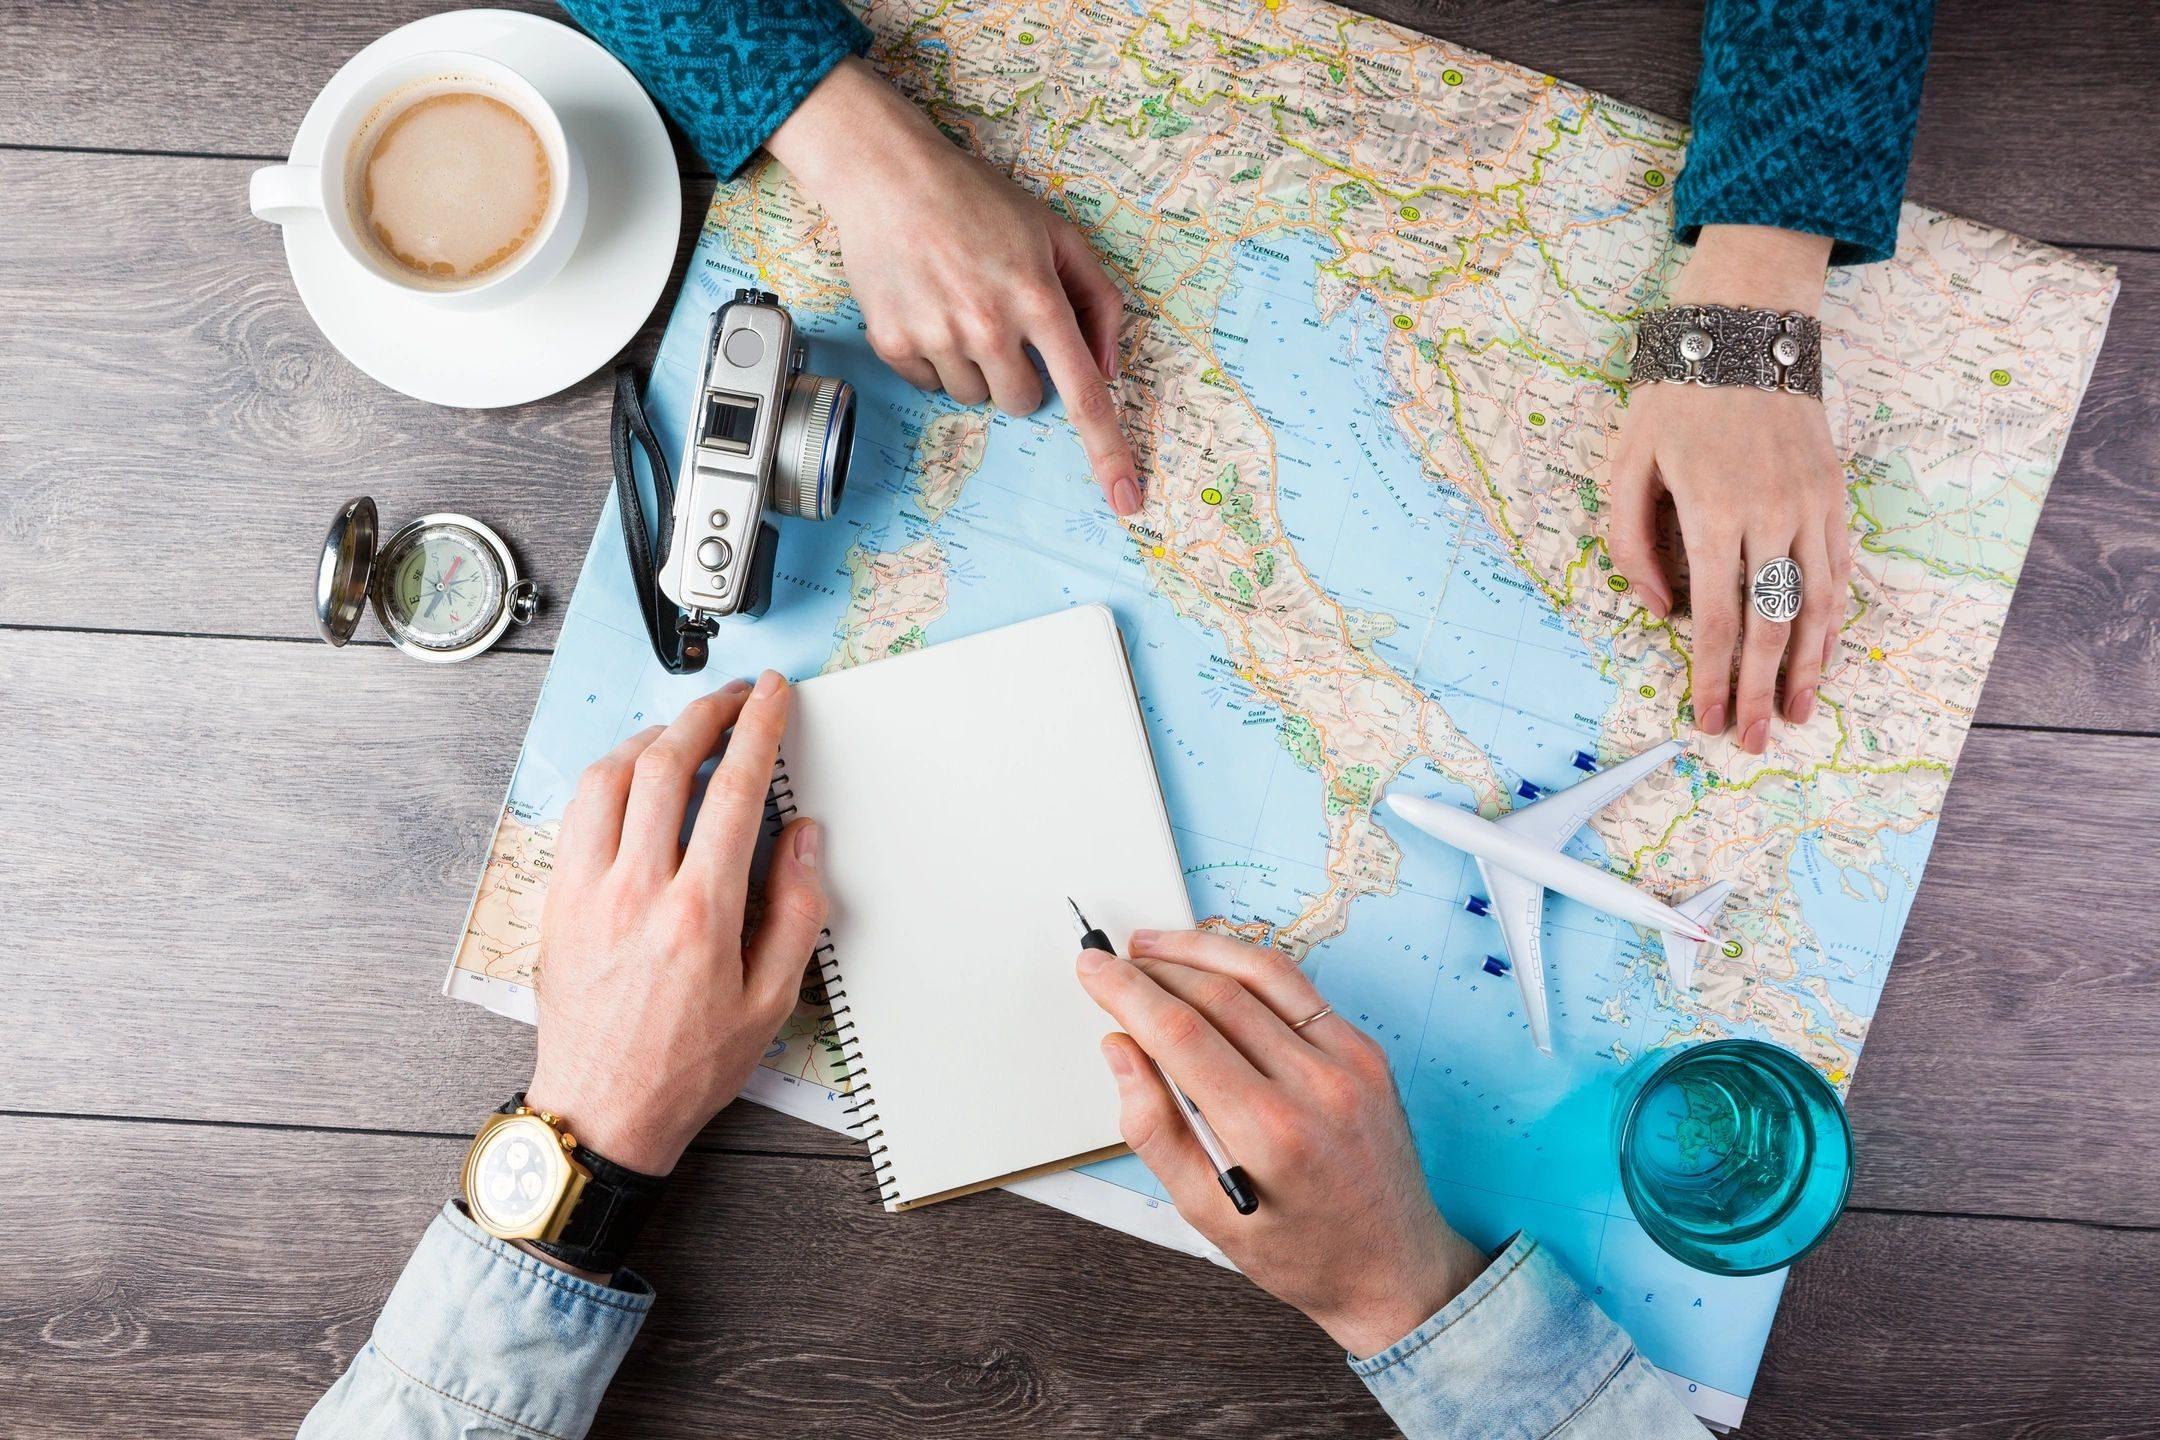 Man and woman looking at a map for places to travel